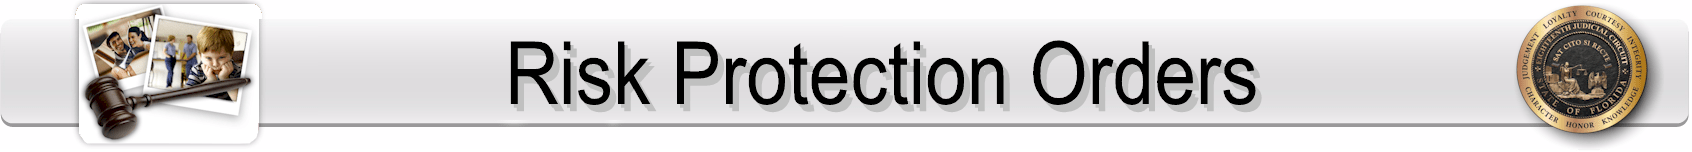 Risk Protection Orders